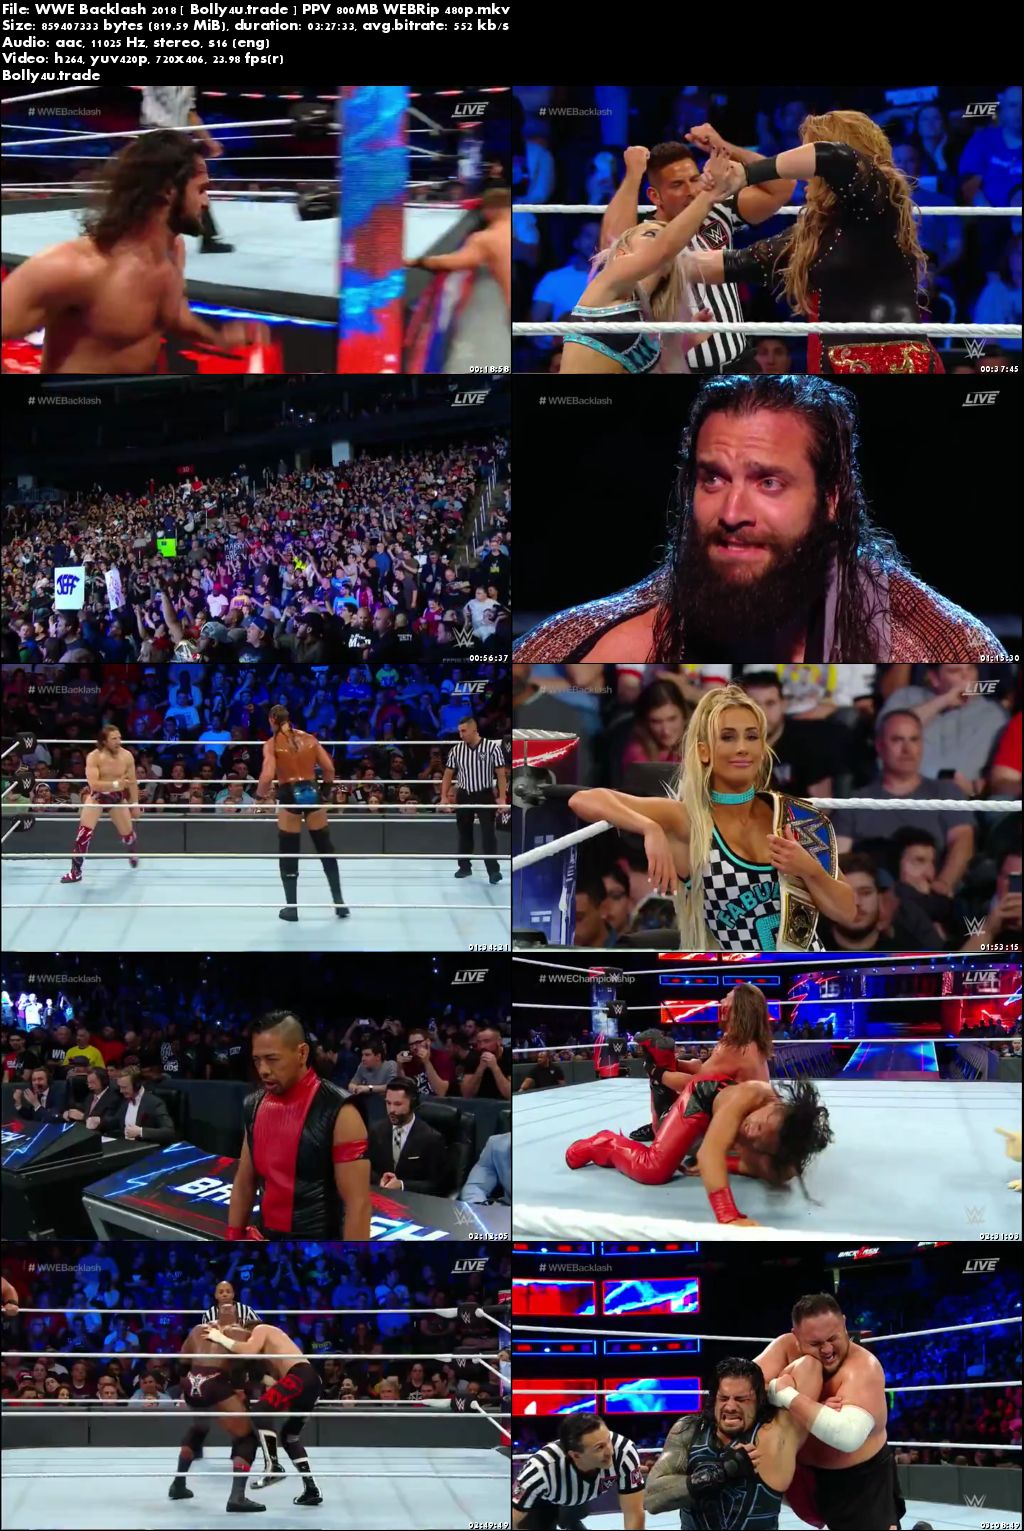 WWE Backlash 2018 WBERip 800MB PPV Full Show 480p Download